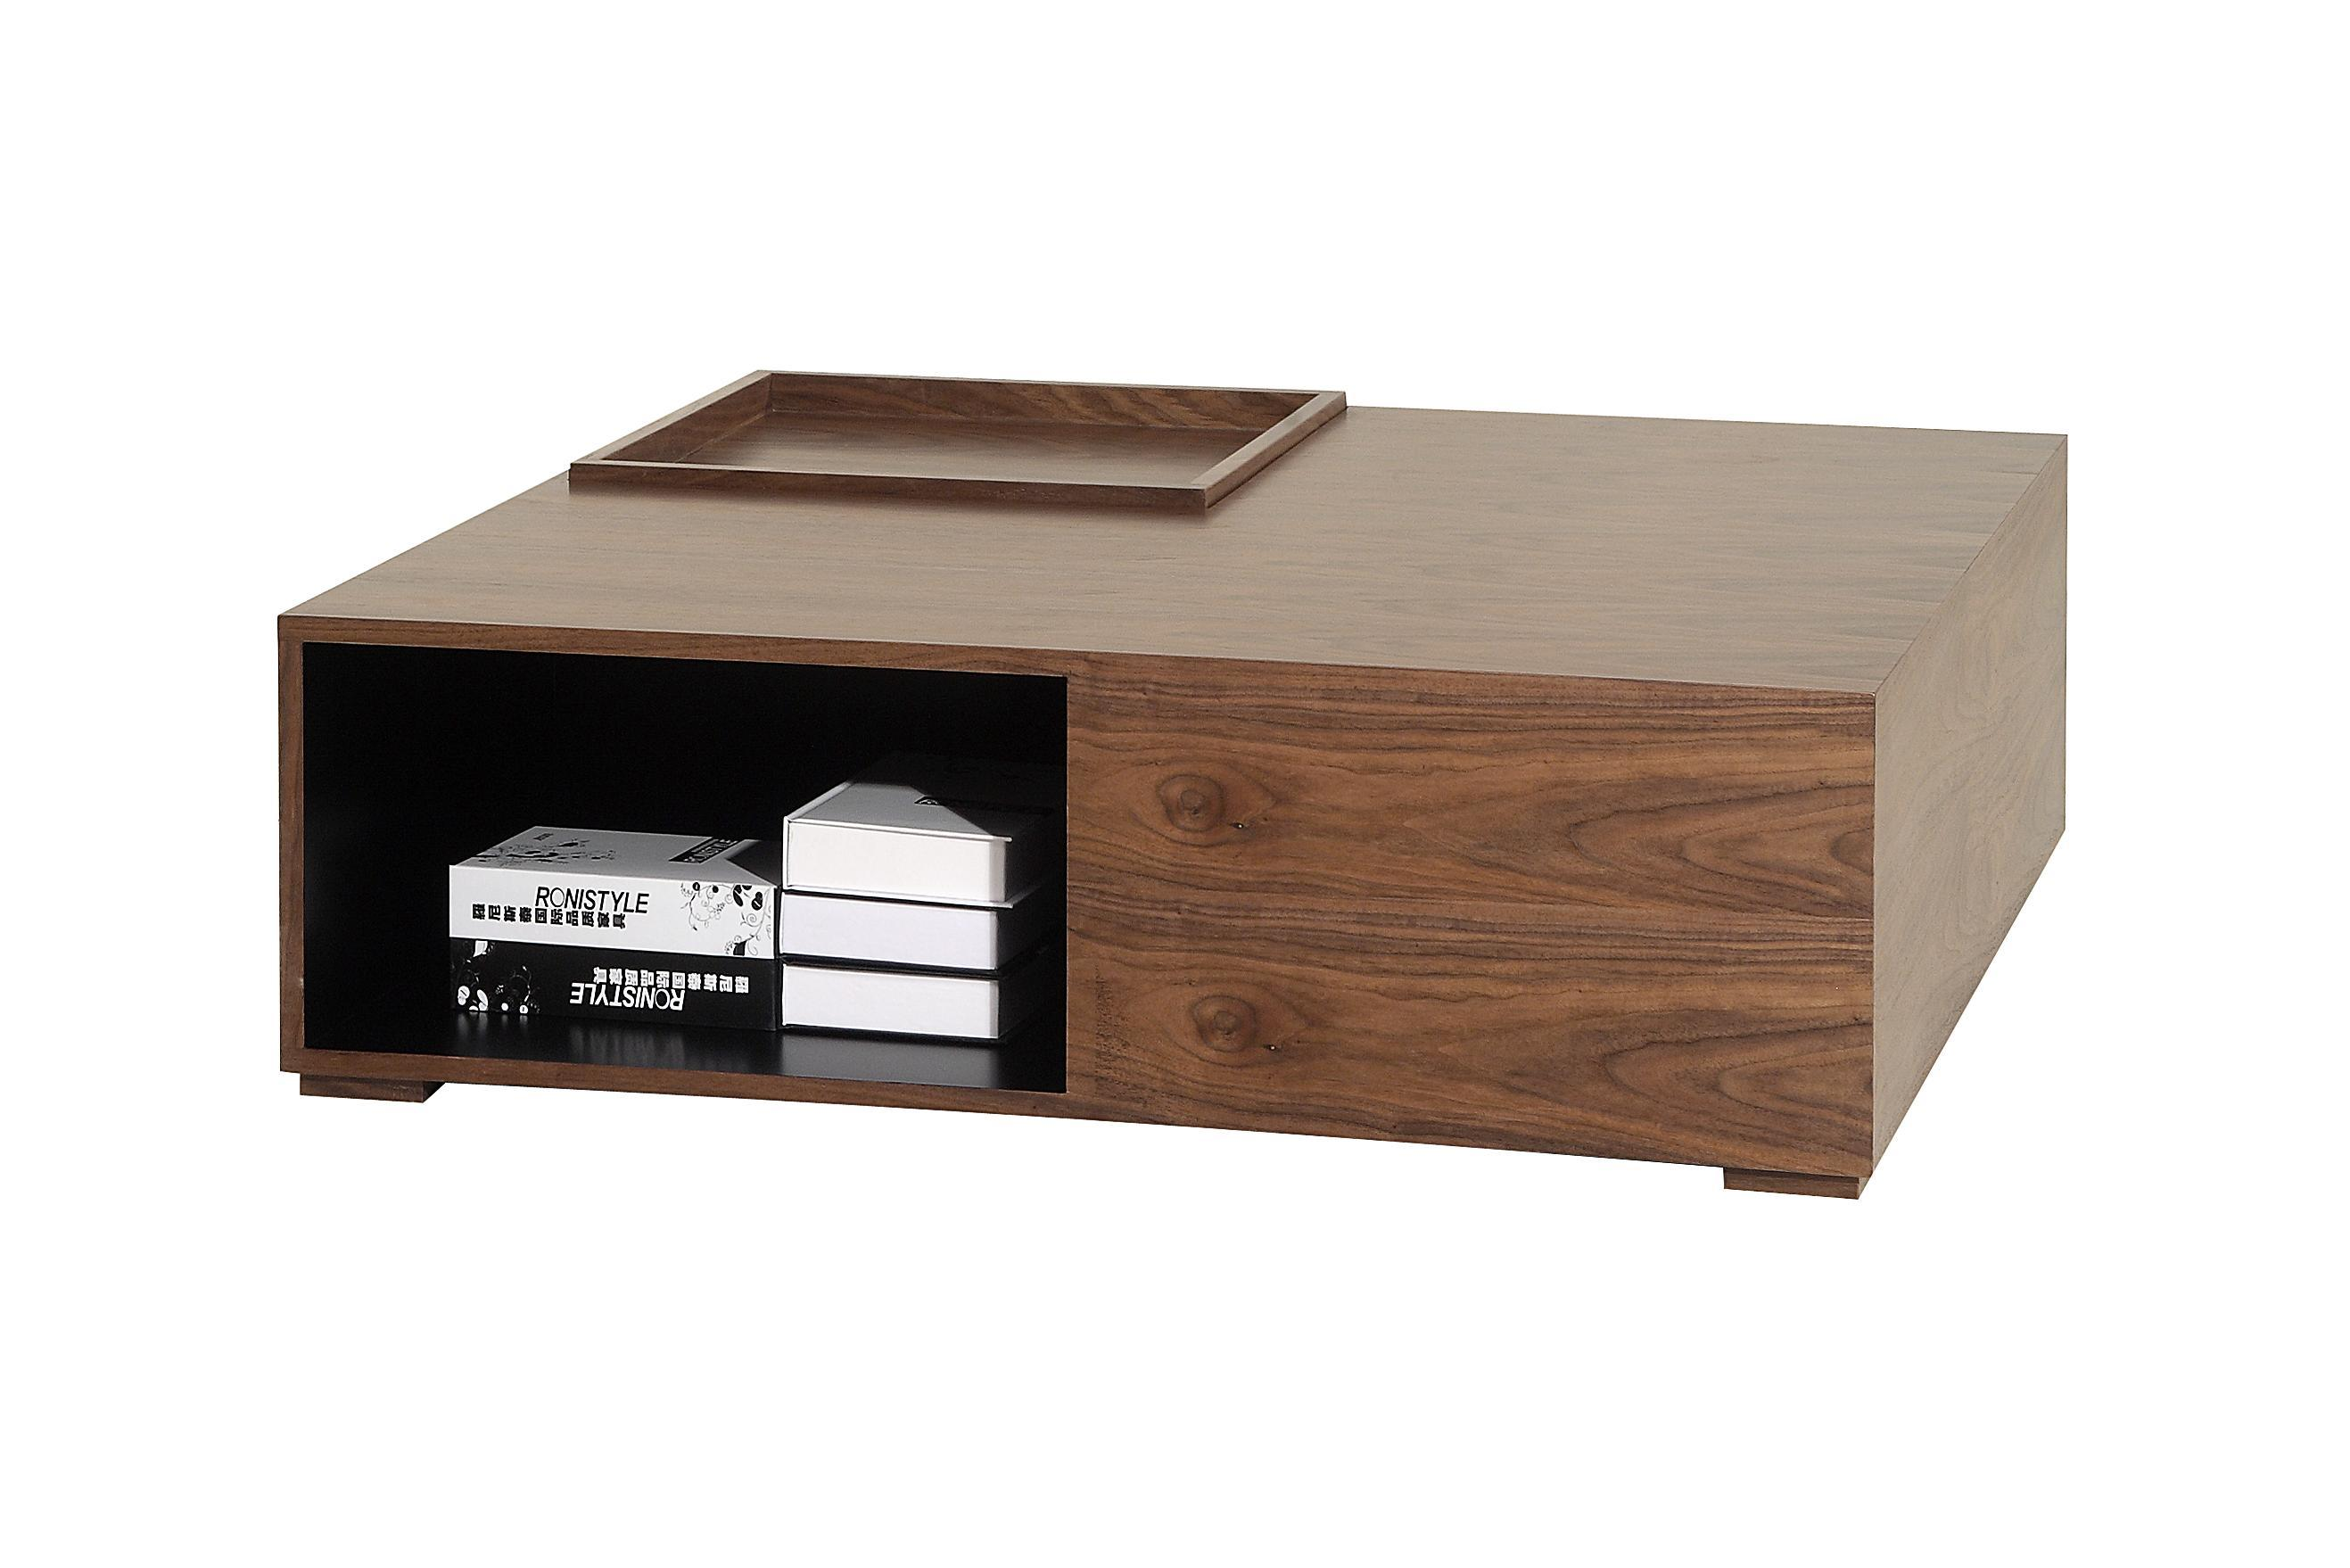 Table basse en bois moderne de qualit lcj 042 table basse en bois moderne de qualit lcj - Table moderne bois ...